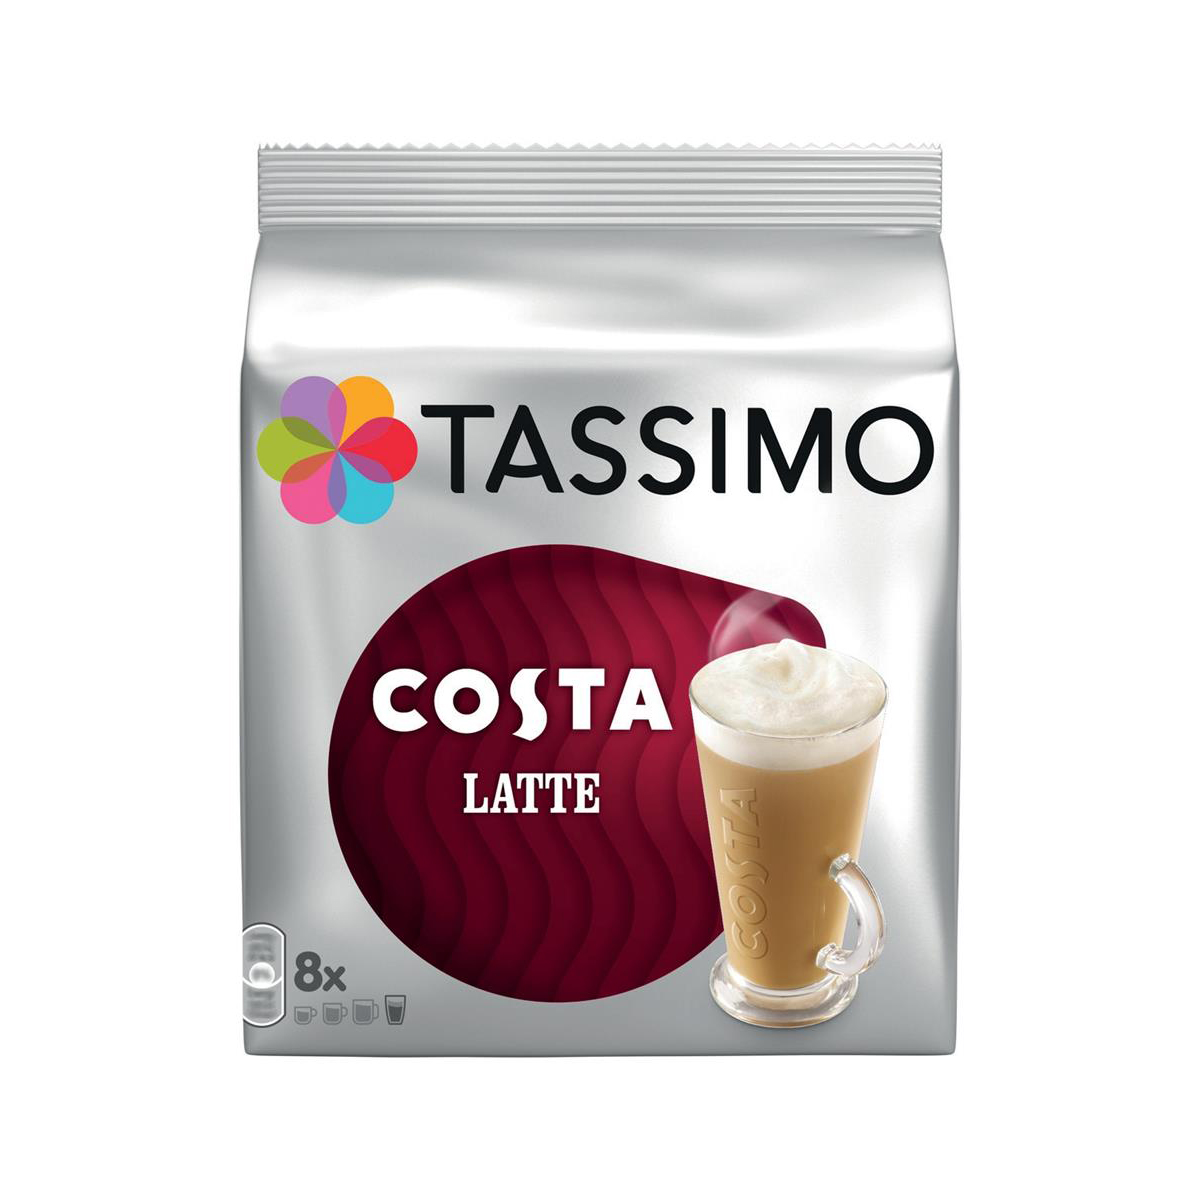 Tassimo Costa Latte Pods 8 Servings Per Pack Ref 4031635 Pack 5 x 8